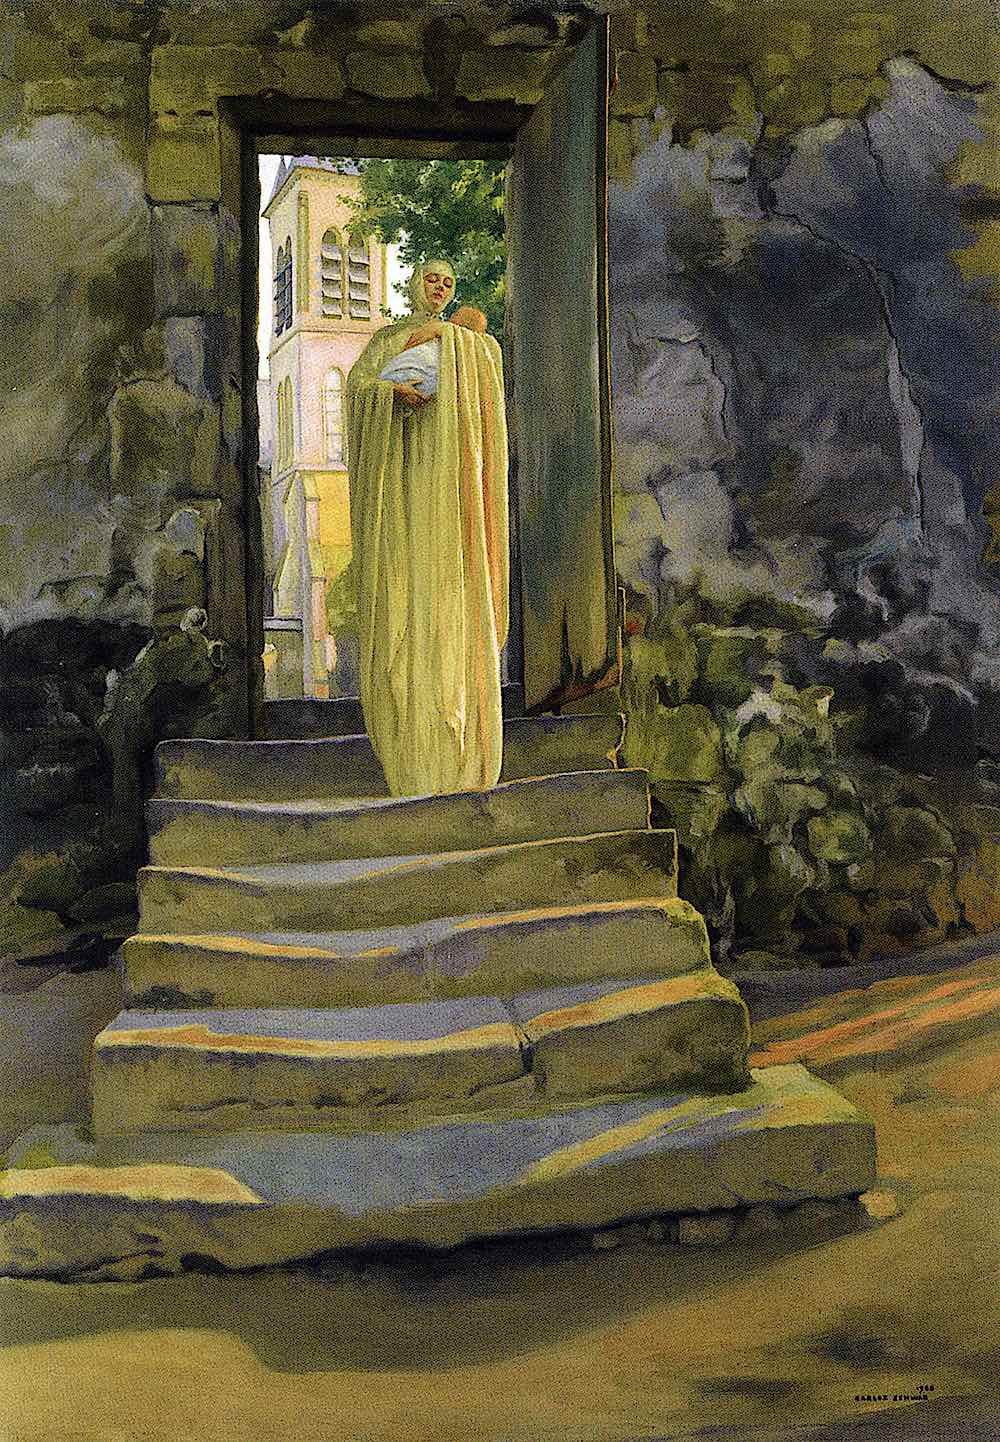 a Carlos Schwabe painting of a woman in yellow resuing a baby